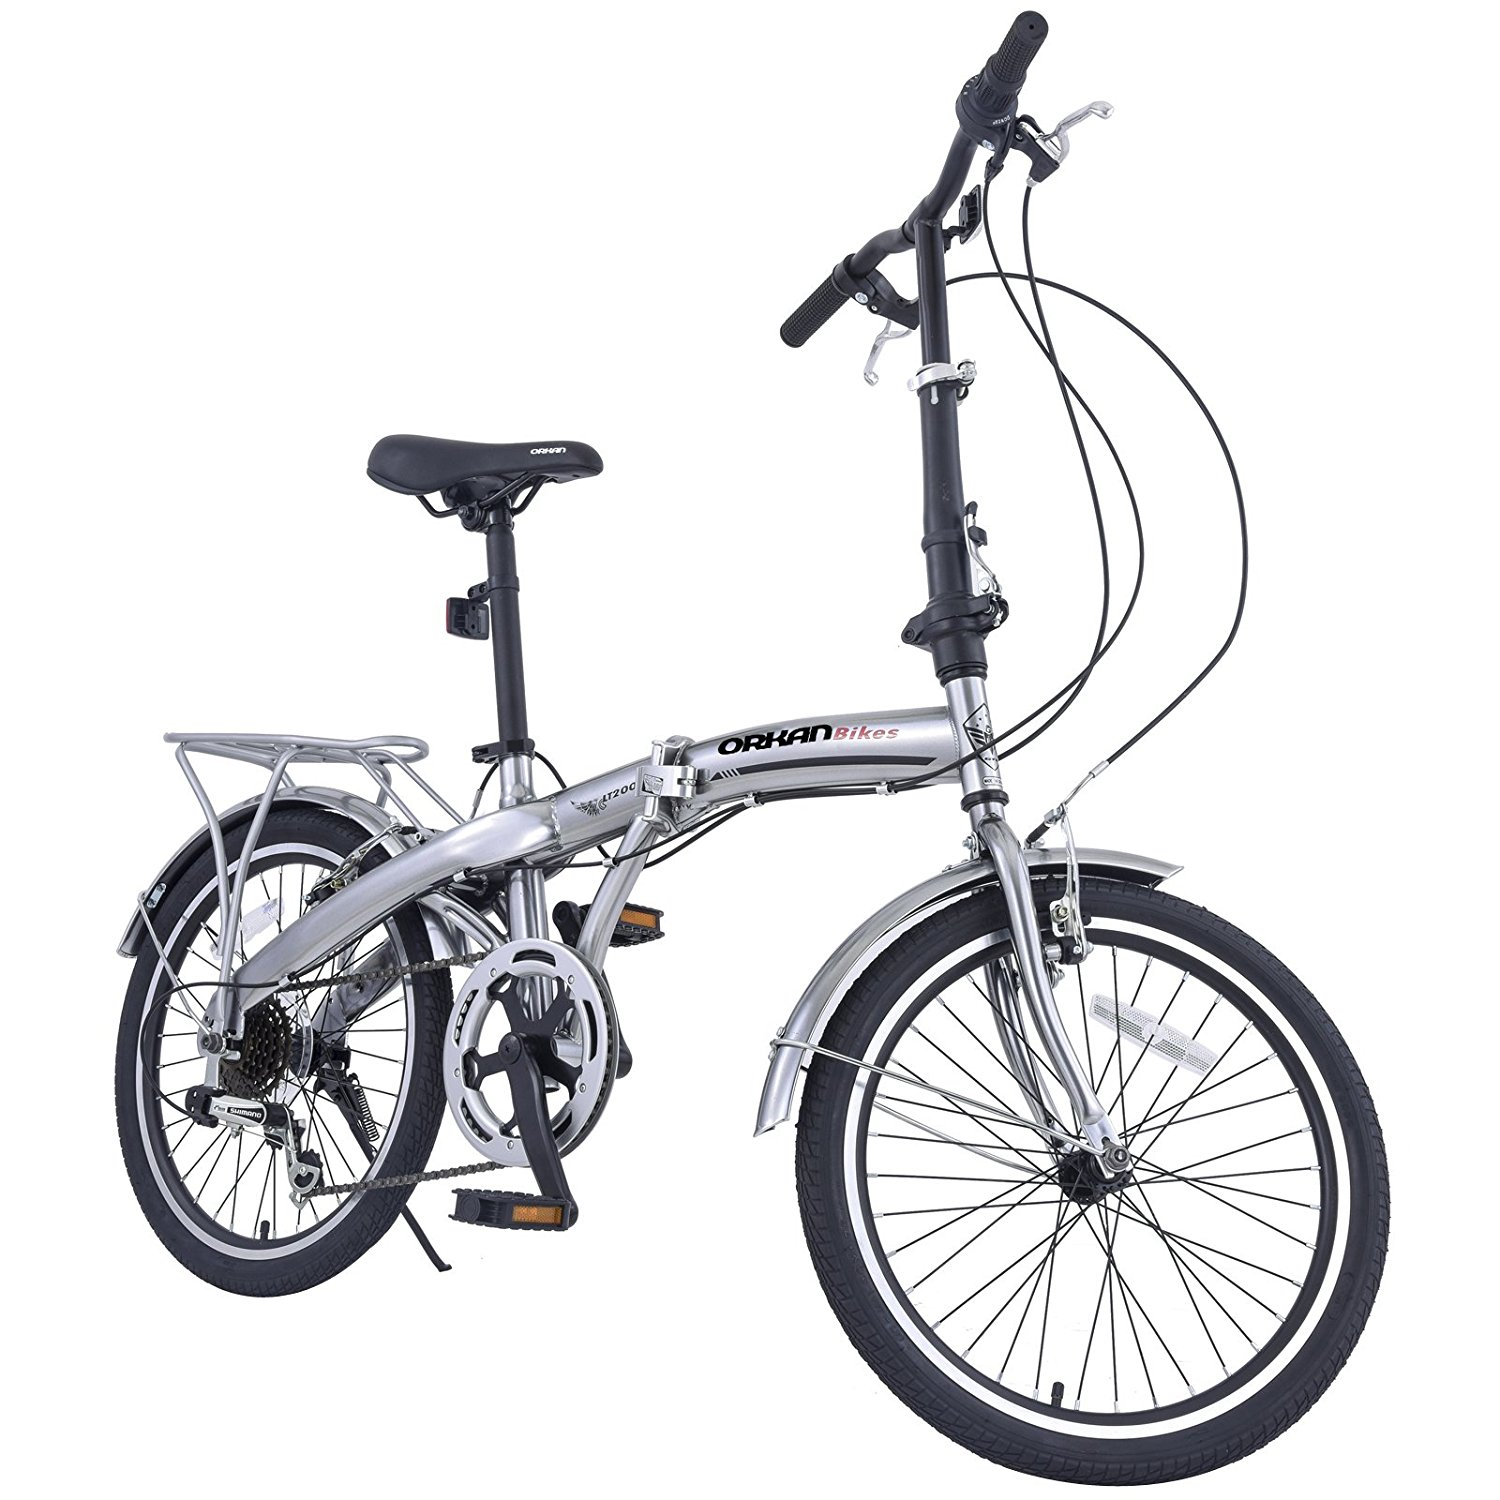 "Uenjoy 20"" 6 Speed Foldable Bicycle Folding Bike Shimano Hybrids,Sliver"